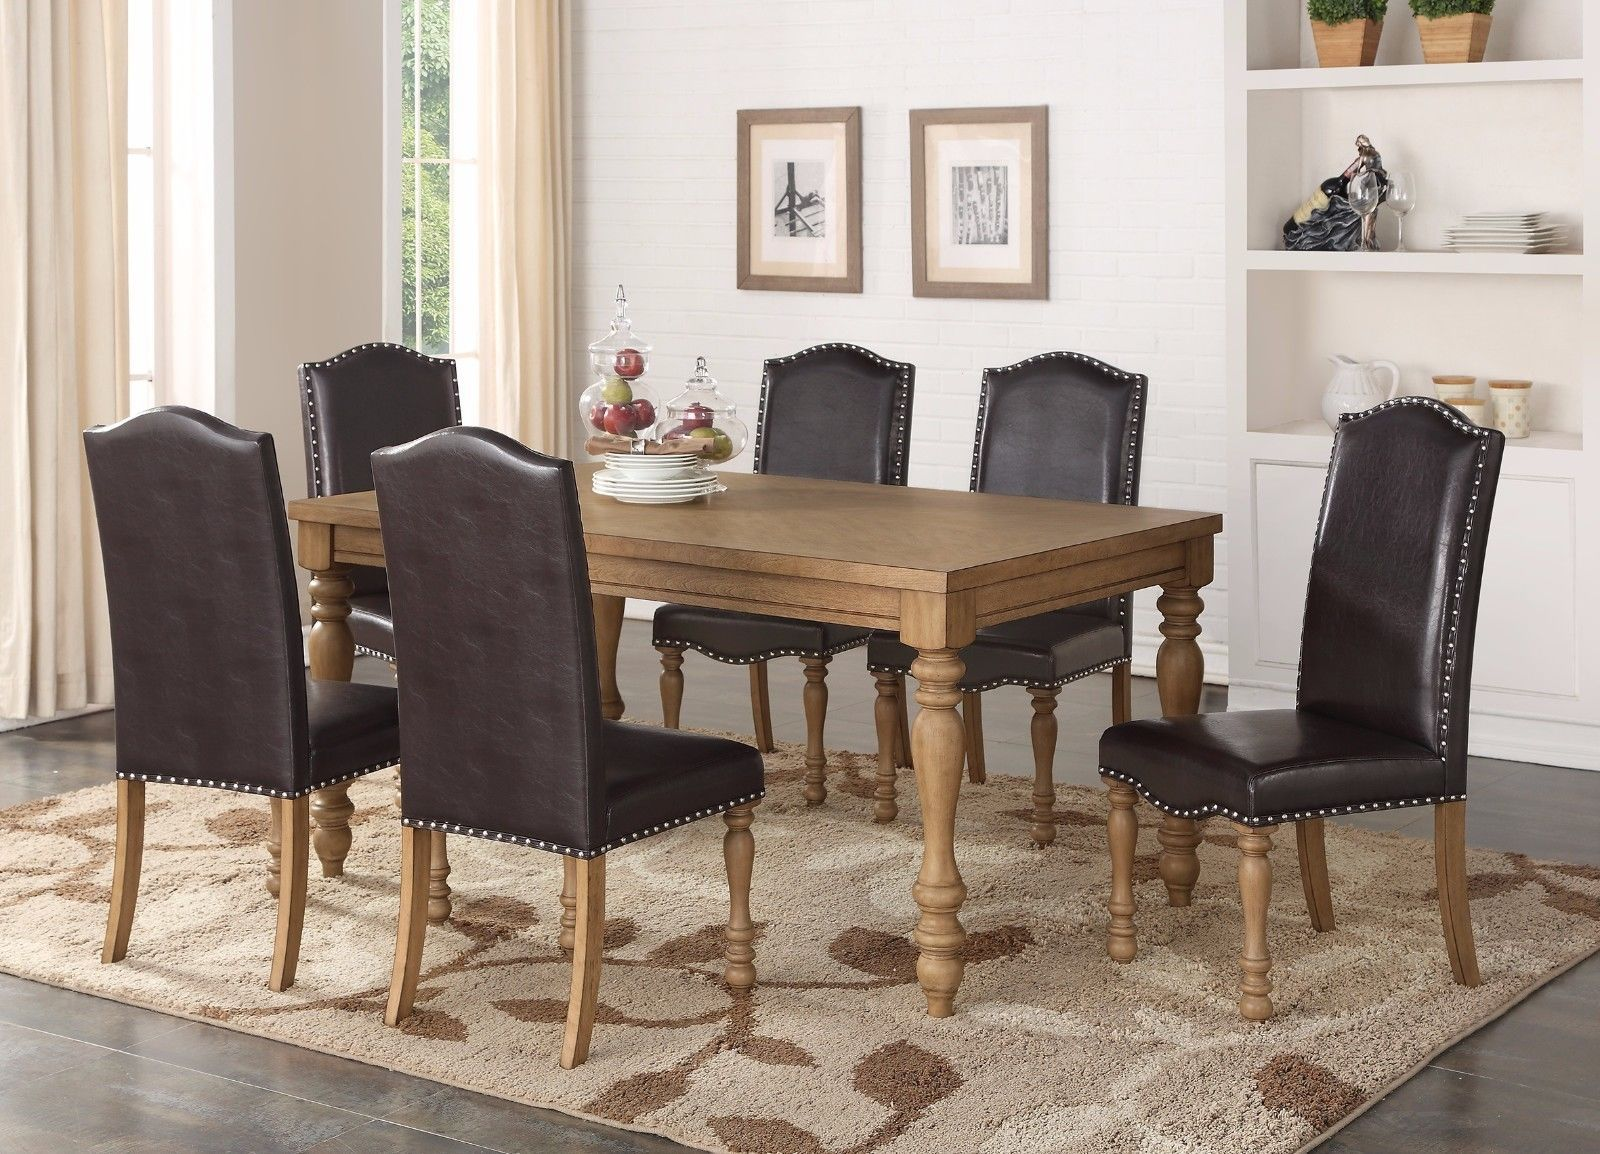 contemporary dark brown faux leather chairs 7pc set wooden